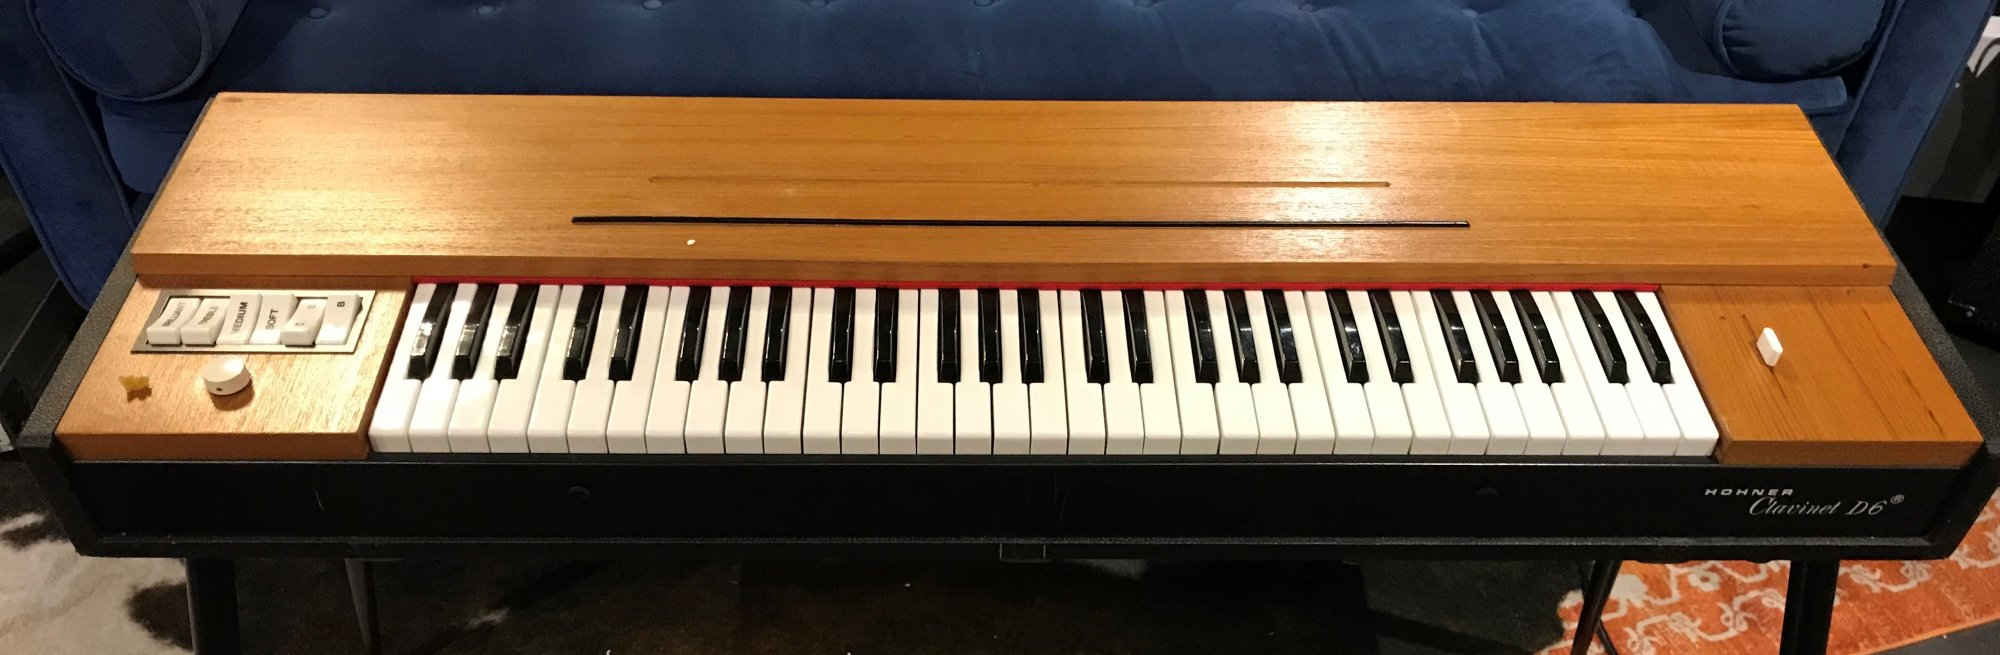 Used Hohner D6 Clavinet 1970's